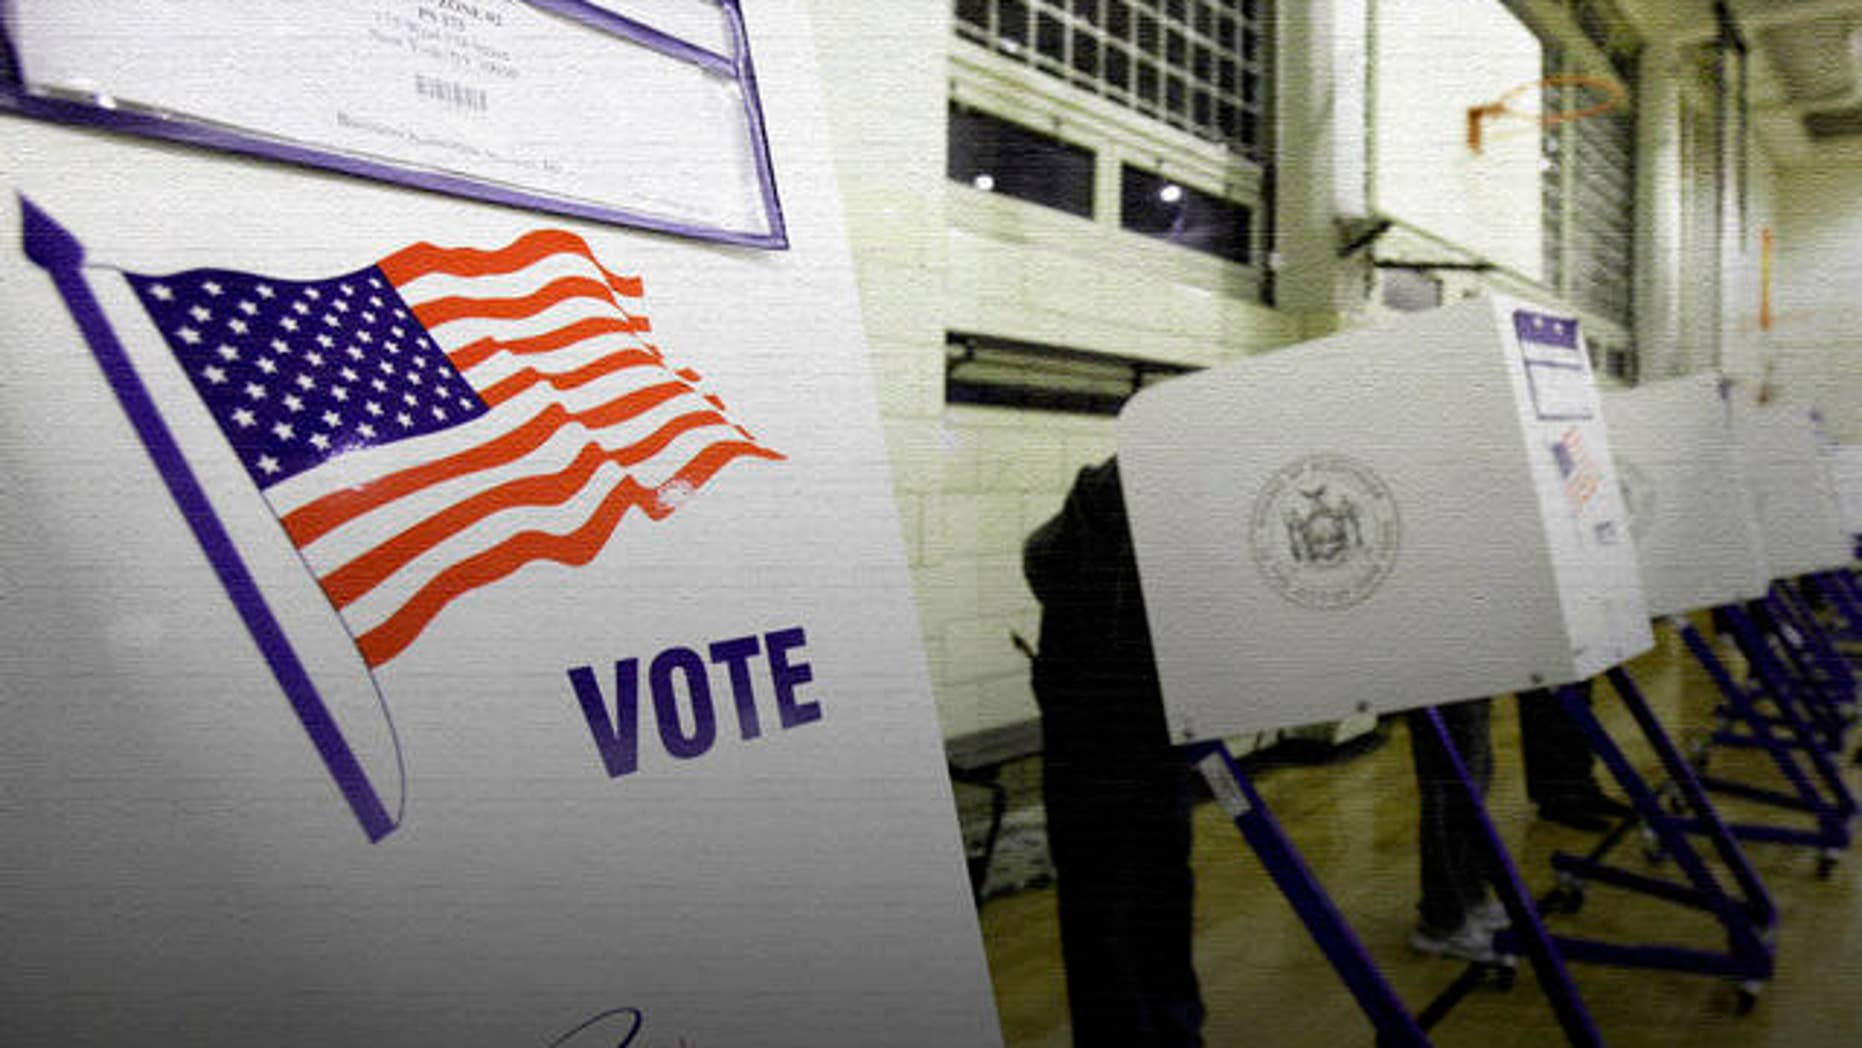 FILE - Voters cast their ballots in a school gym in New York's Harlem neighborhood, Tuesday, Nov. 2, 2010.